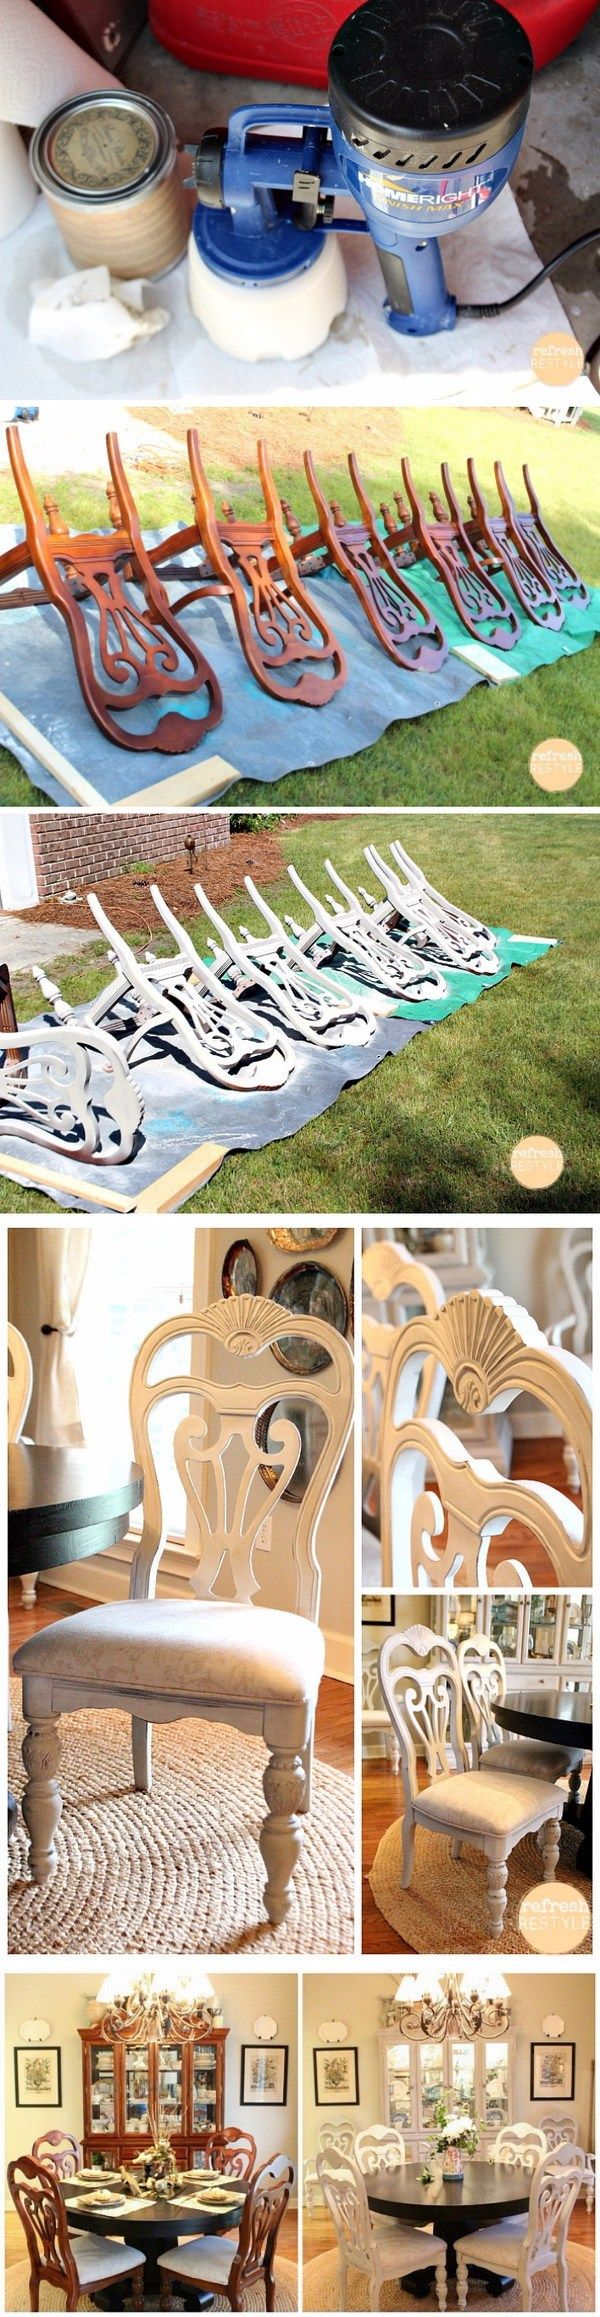 Spray Painted Dining Chairs. Spray paint furniture makeover. Turn the old ugly dining chairs into these gorgeous ones with chalk based paint! It is super easy to do with a bit of handiwork and creativity!